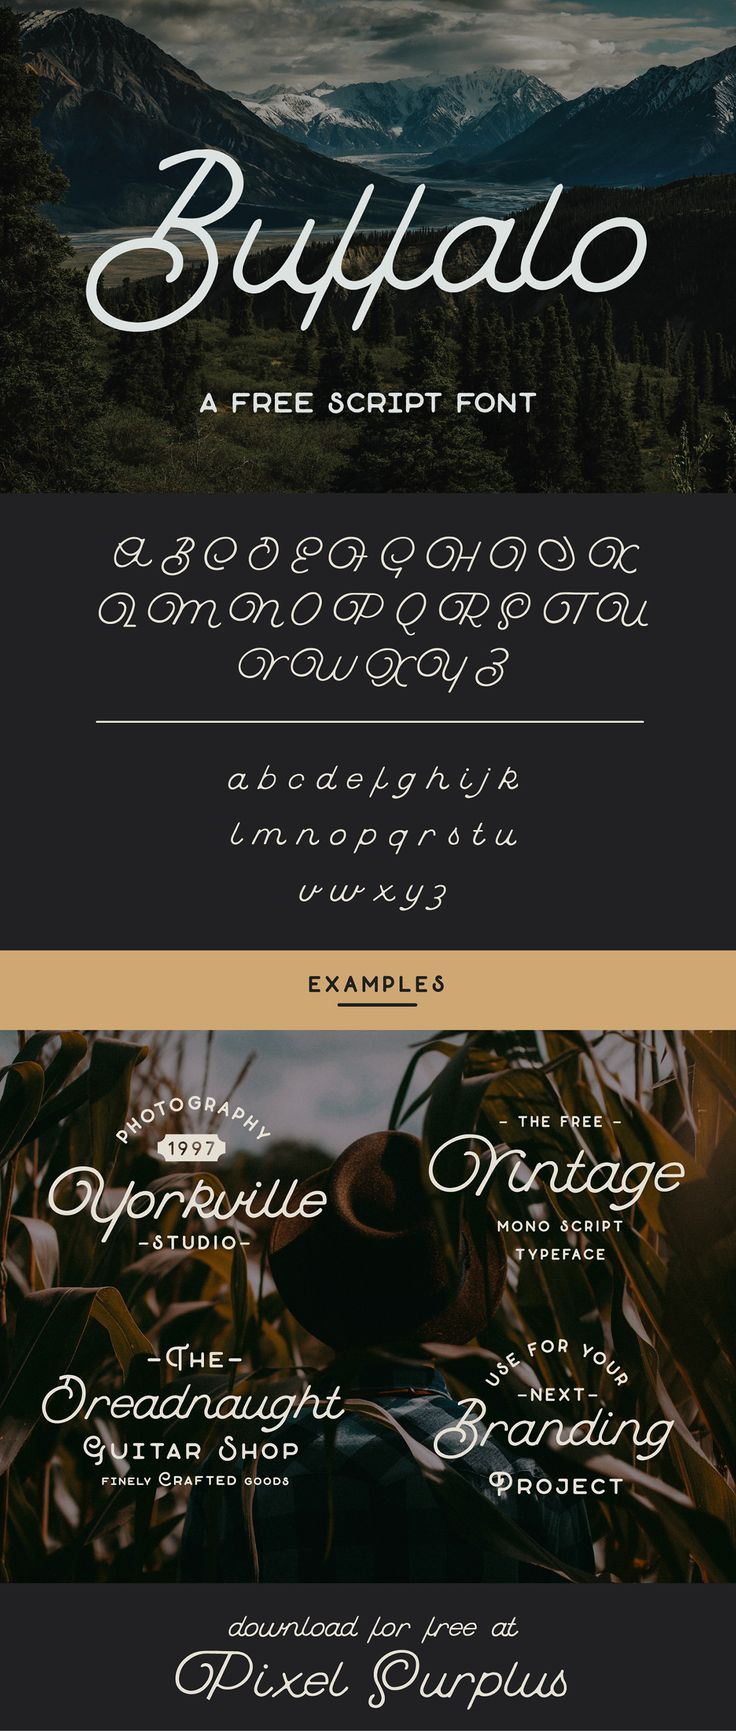 Buffalo is a loopy & quirky monoline script font from Hustle Supply Co.  This premium free font is vintage themed and perfect for branding and promotional projects! - Free for Personal & Commercial use.